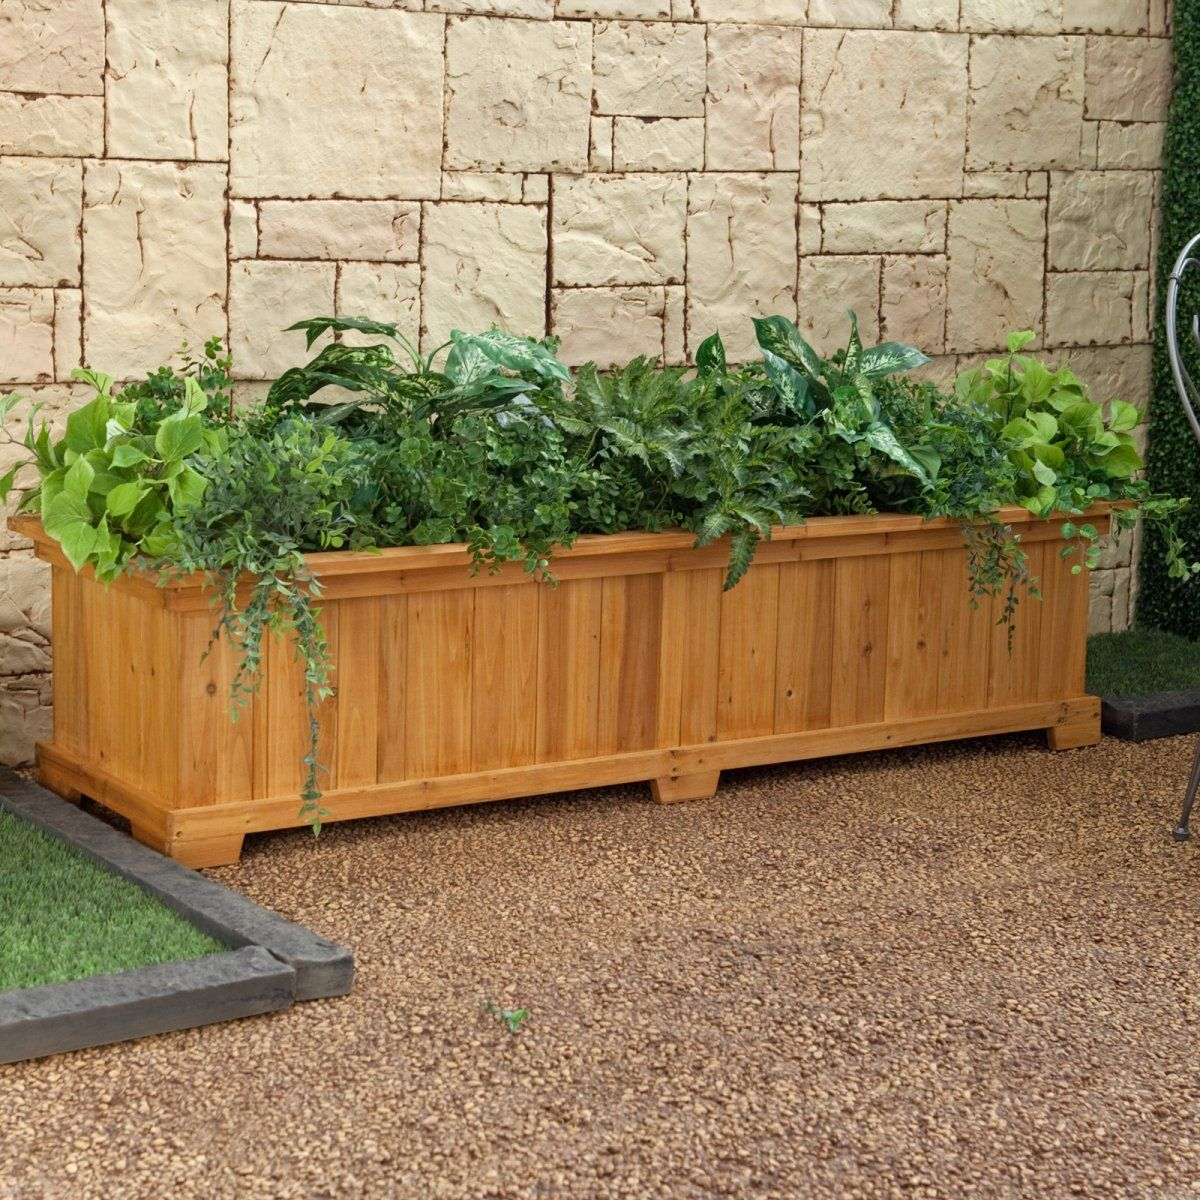 rectangle by inch black dp fairfield box mayne inside planter amazon patio garden com outdoor pots